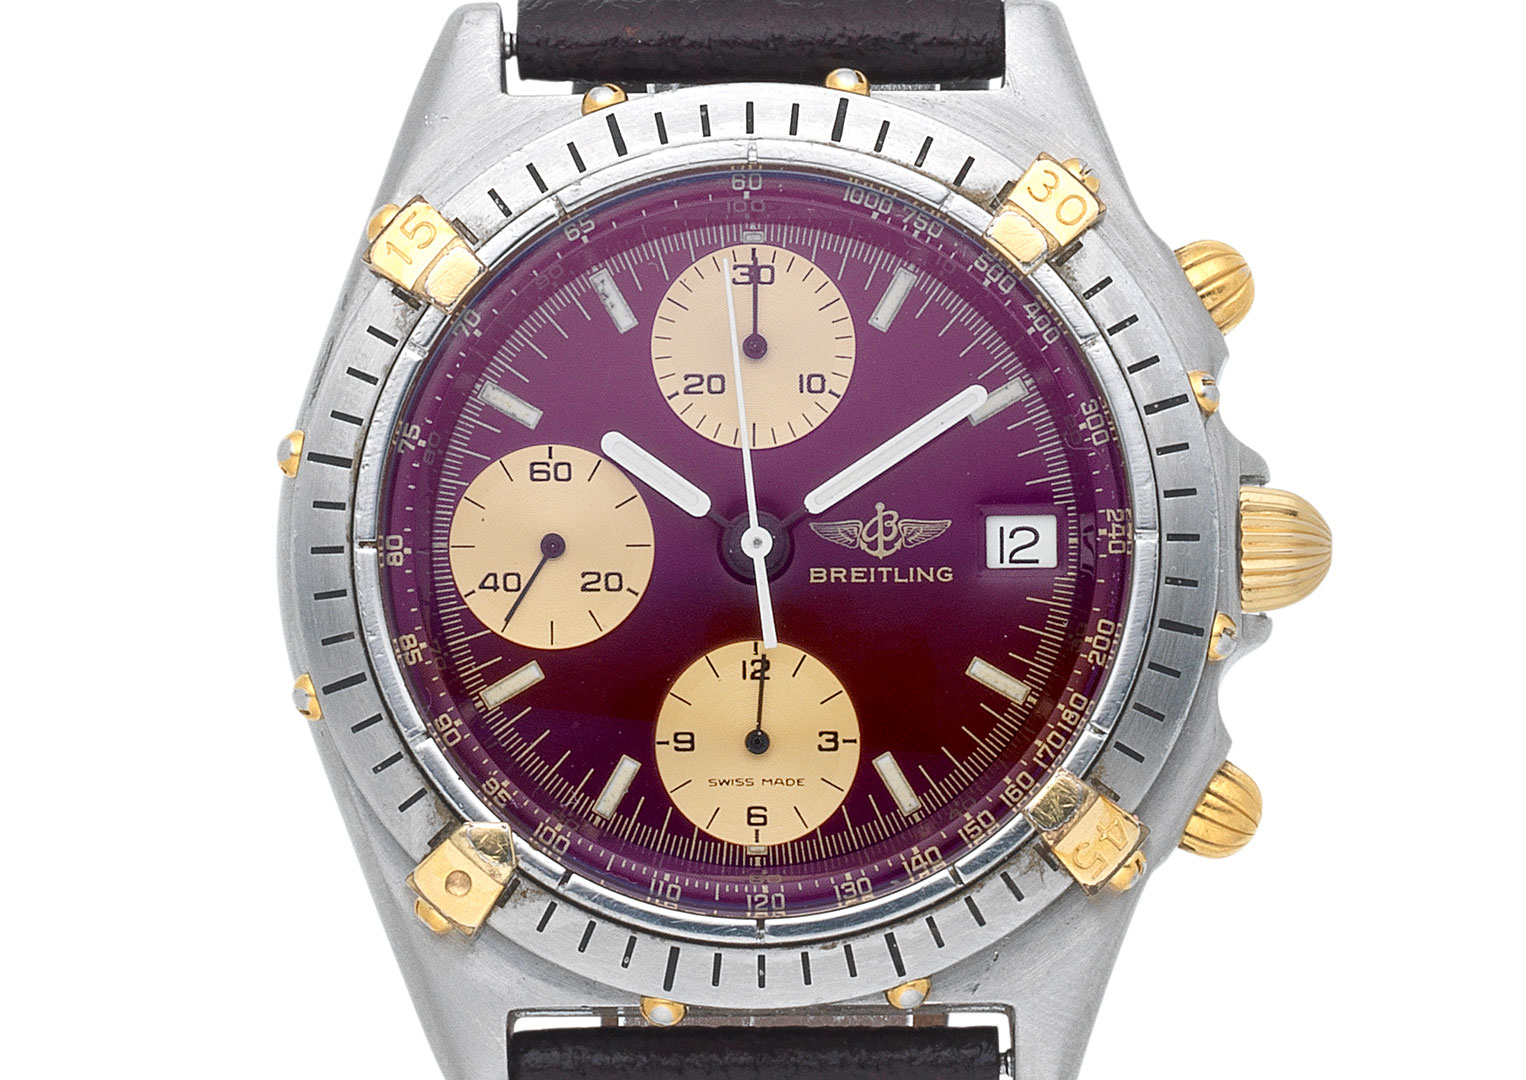 Breitling used the Calibre 7750 during the mechanical revival in the mid 1980s. Image courtesy of Bonhams